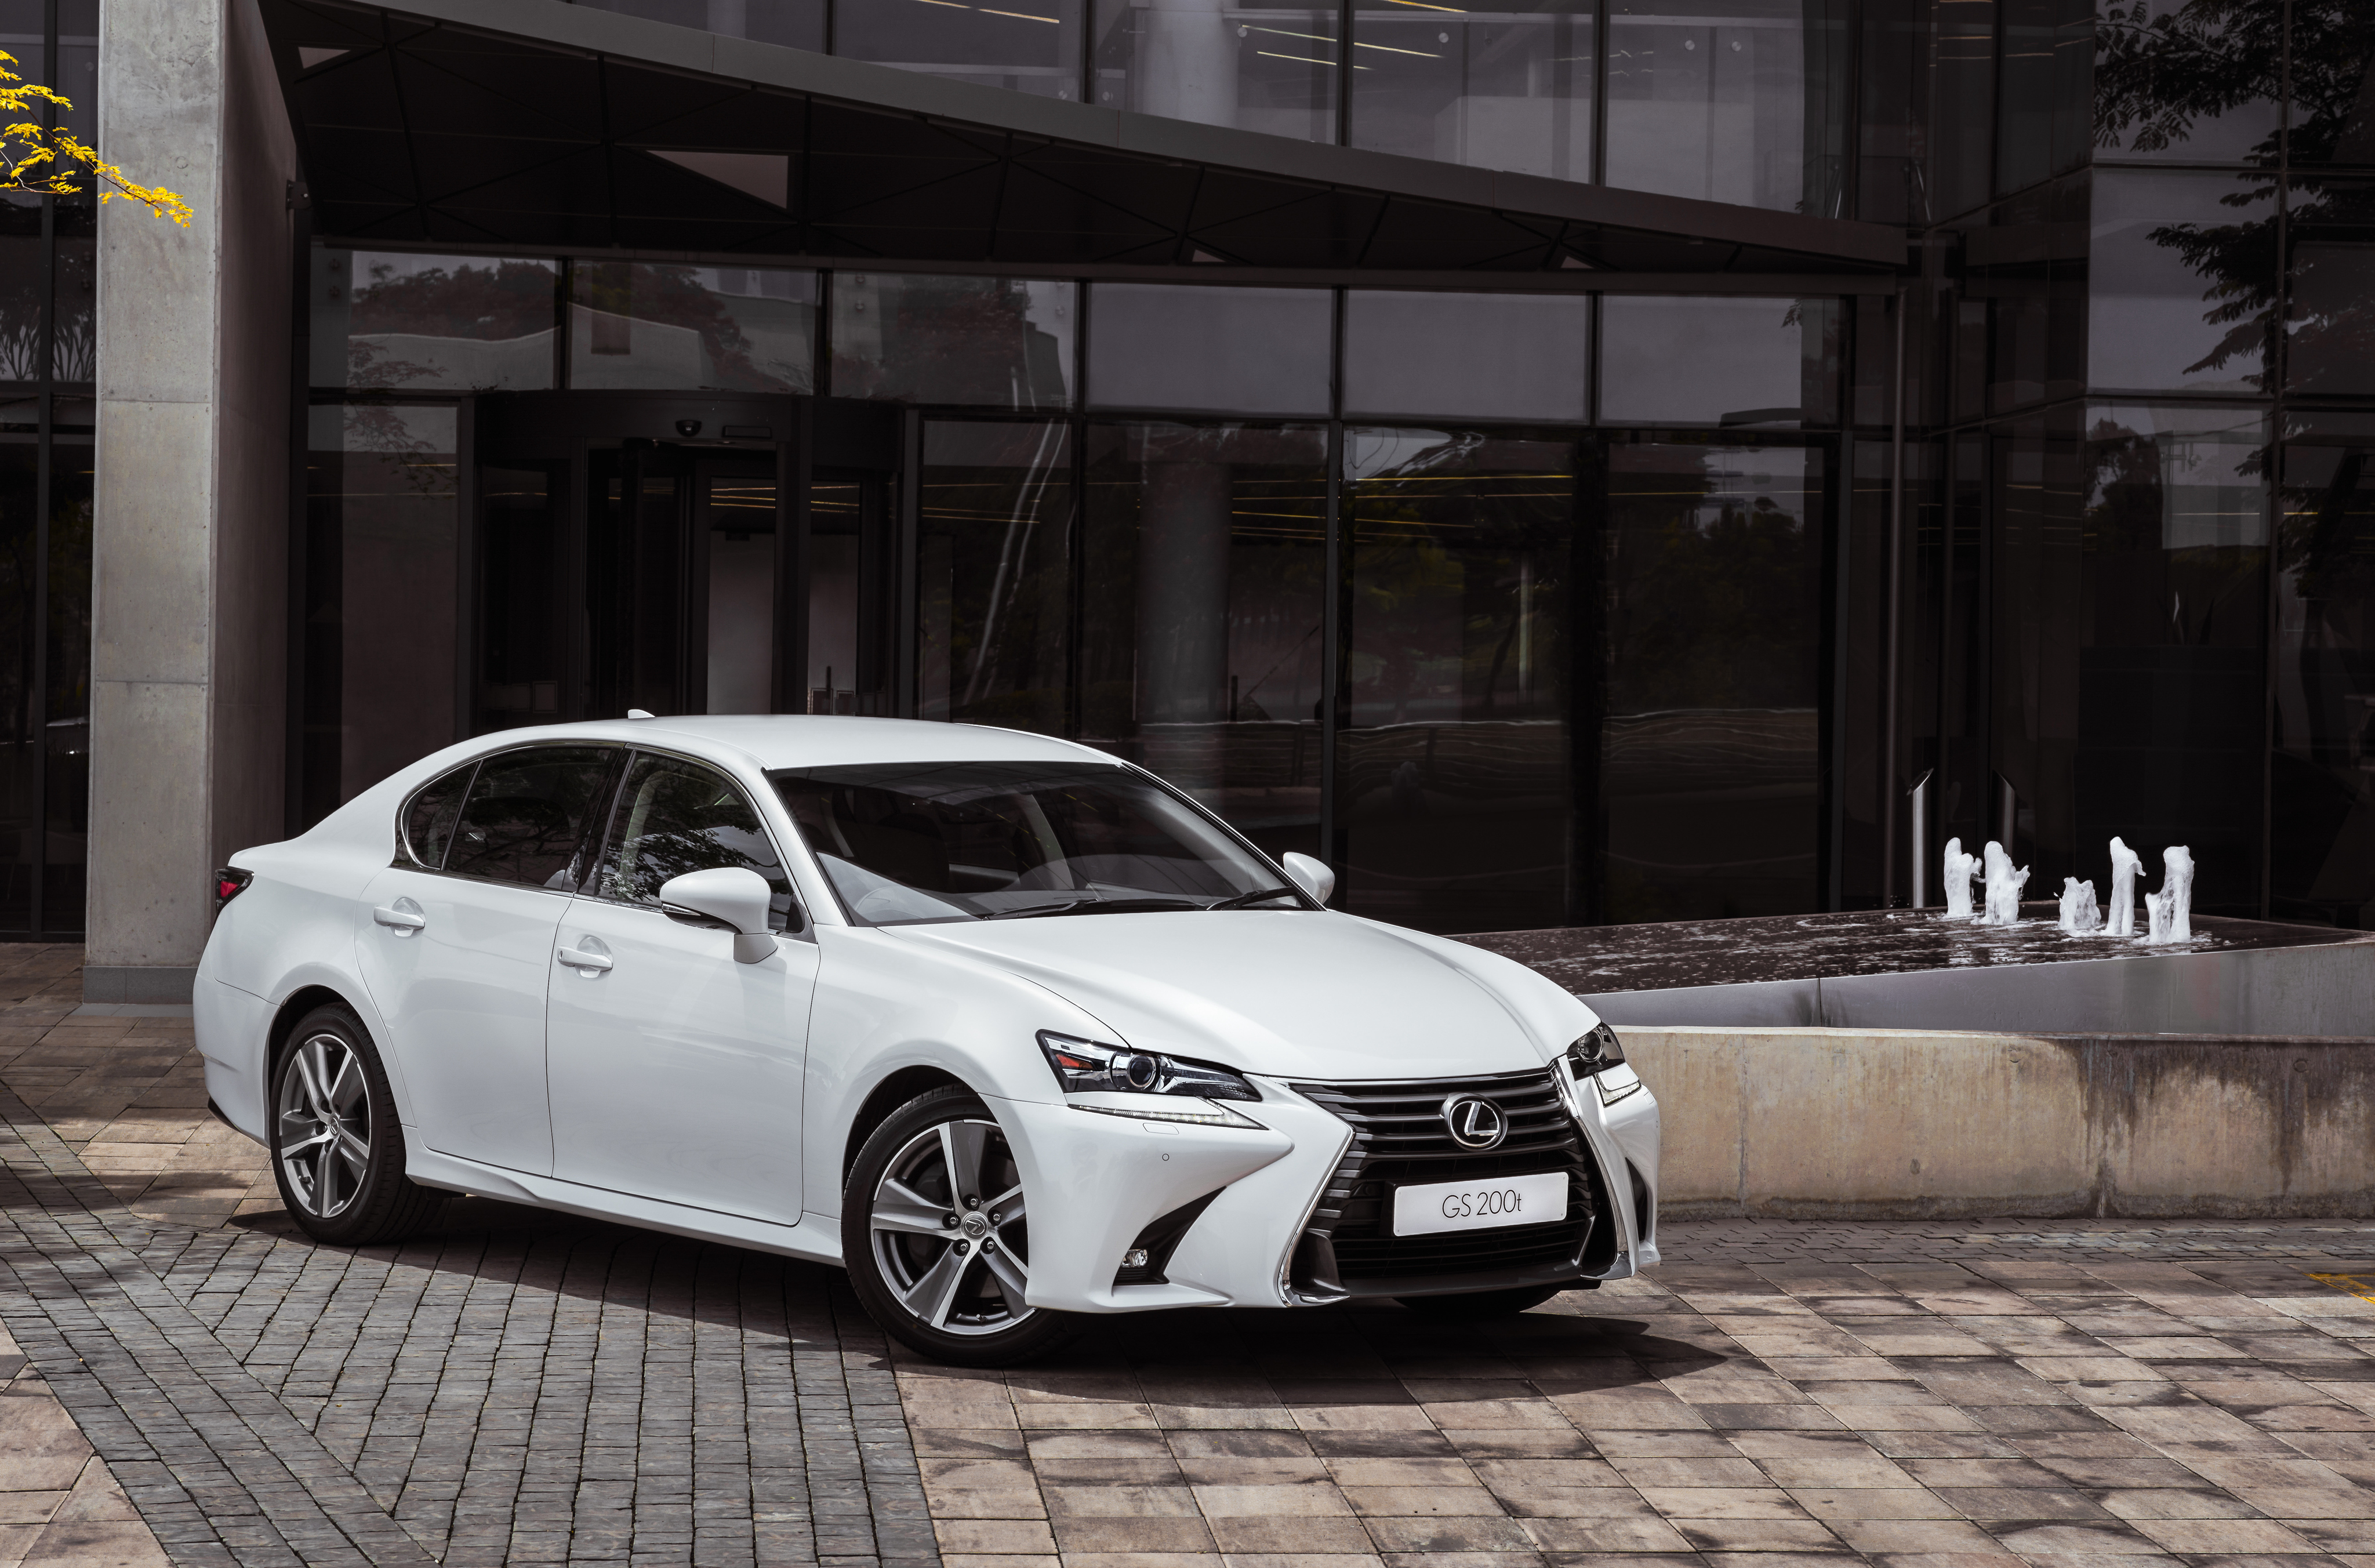 drive price and car overview lx lexus first